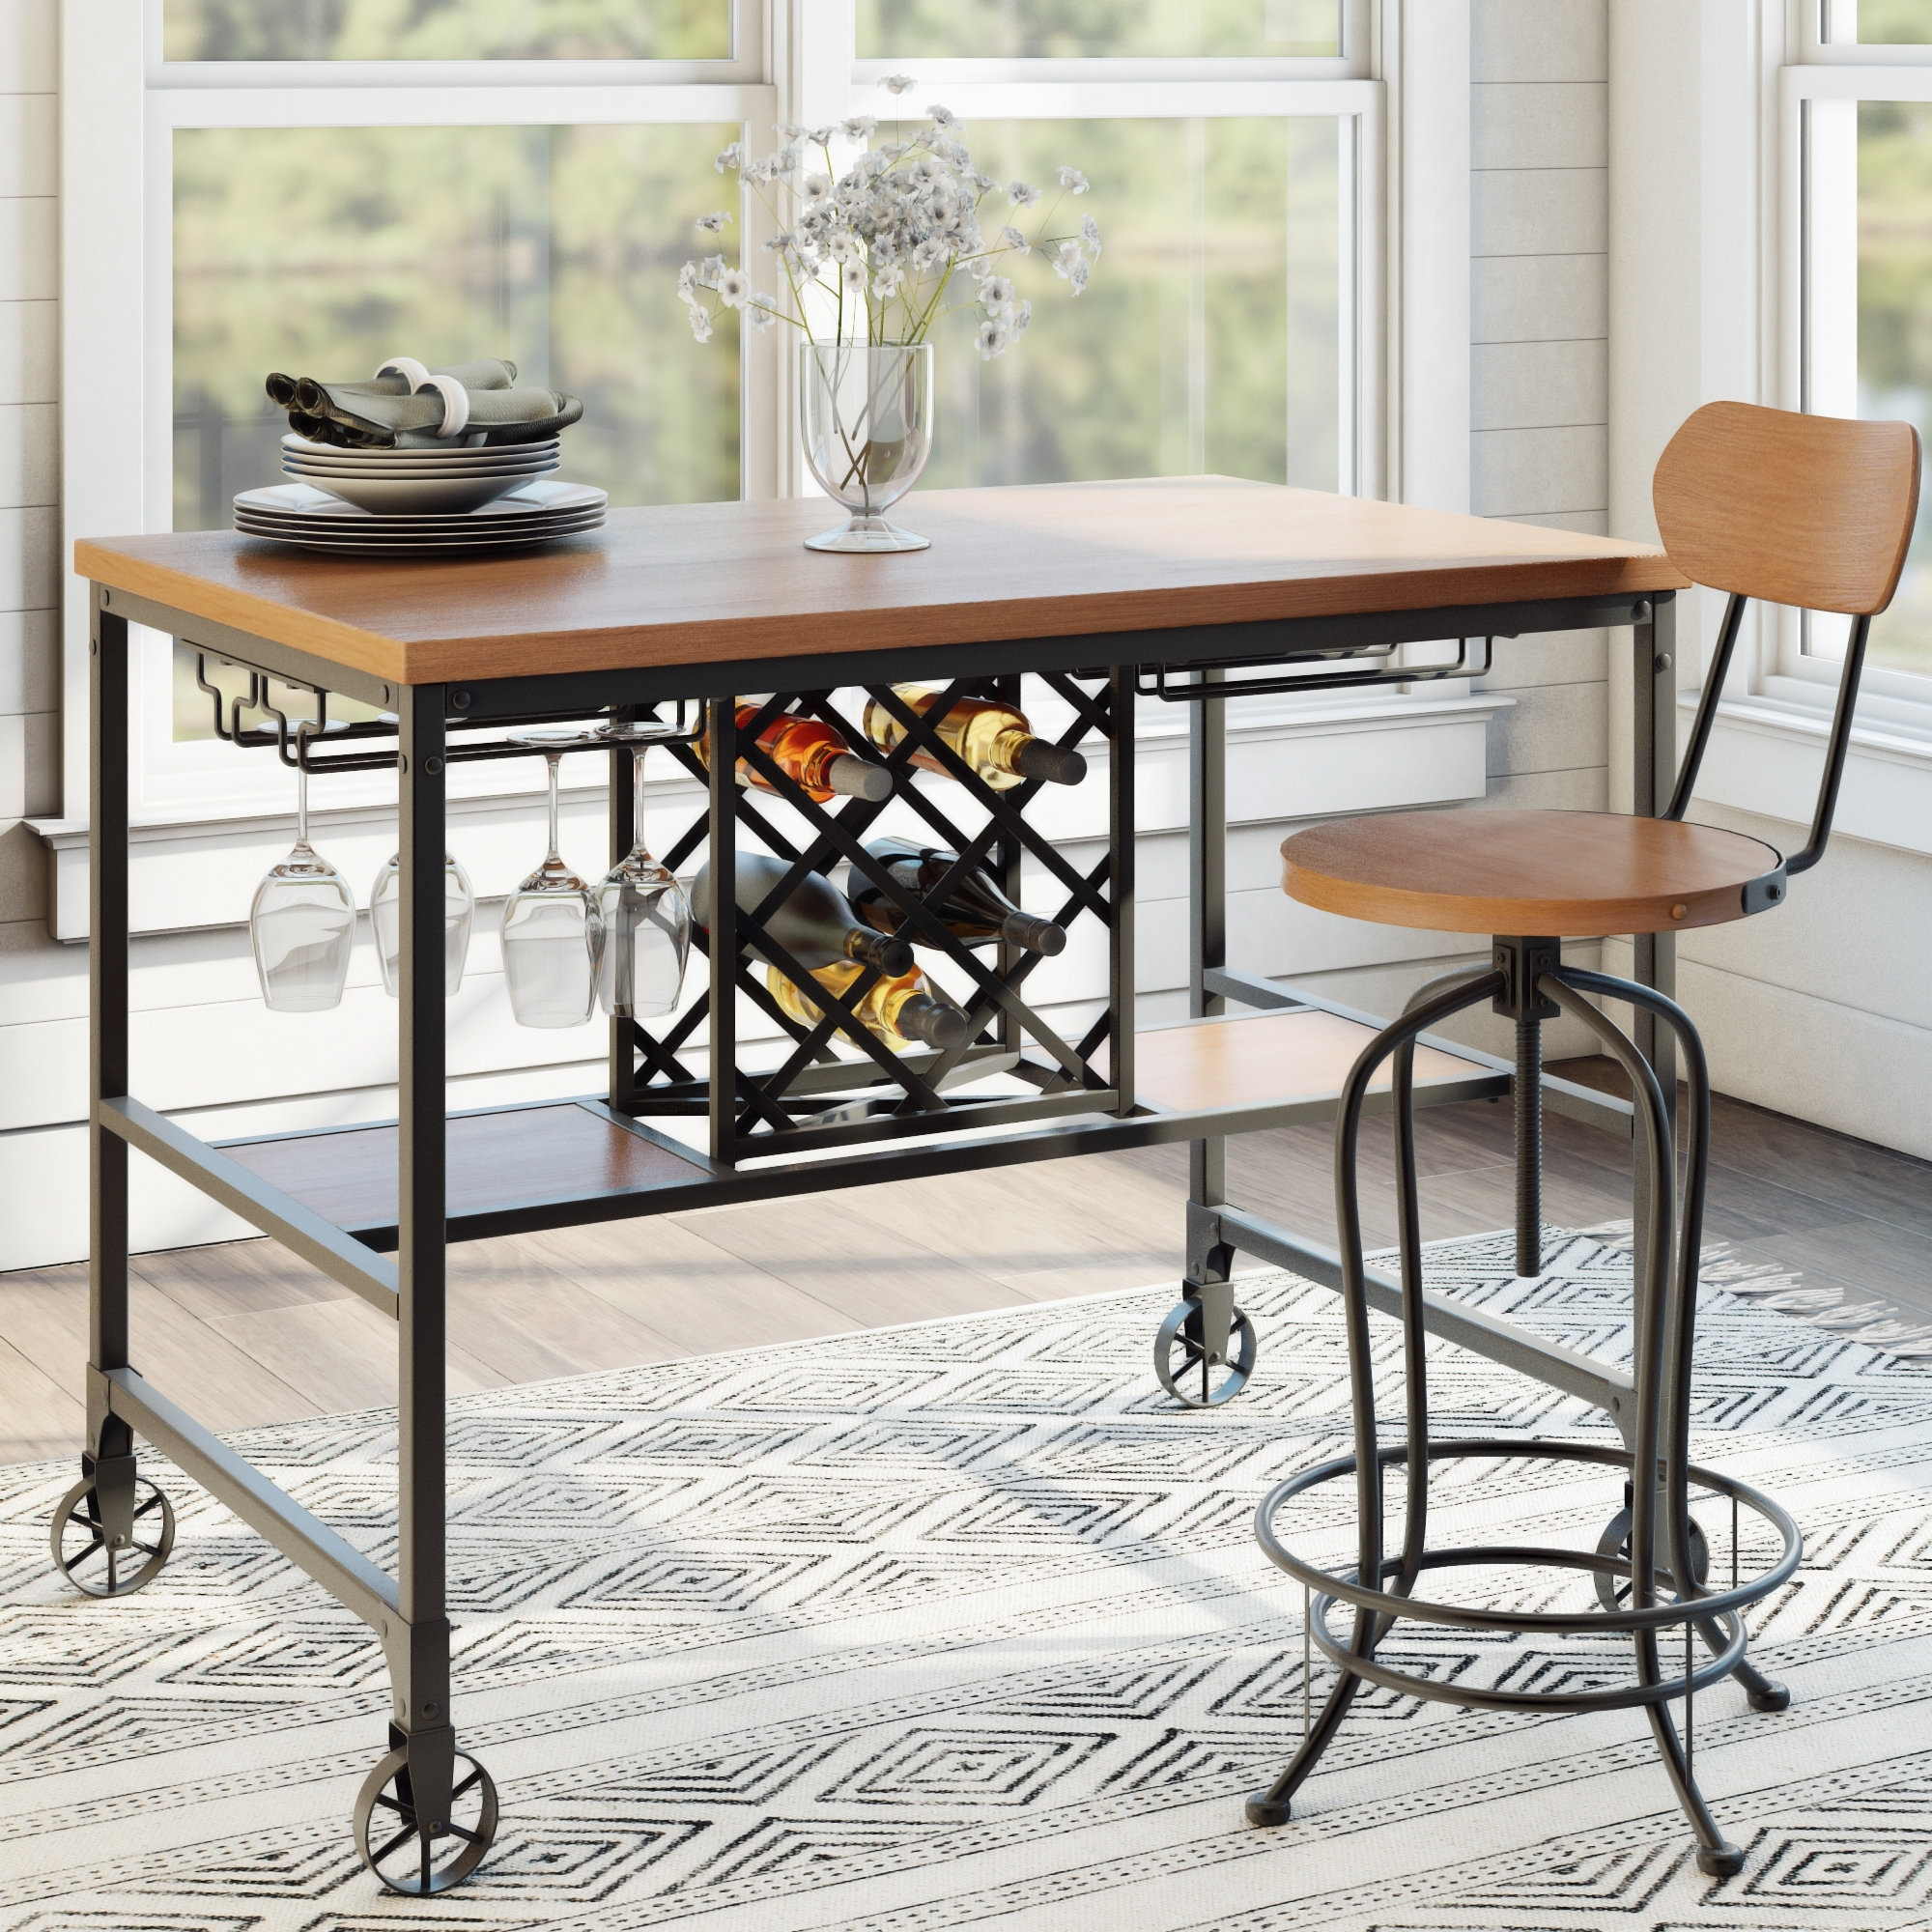 Well Liked Laurel Foundry Modern Farmhouse Elberton 5 Piece Counter Height In Caira Black 5 Piece Round Dining Sets With Upholstered Side Chairs (View 12 of 25)